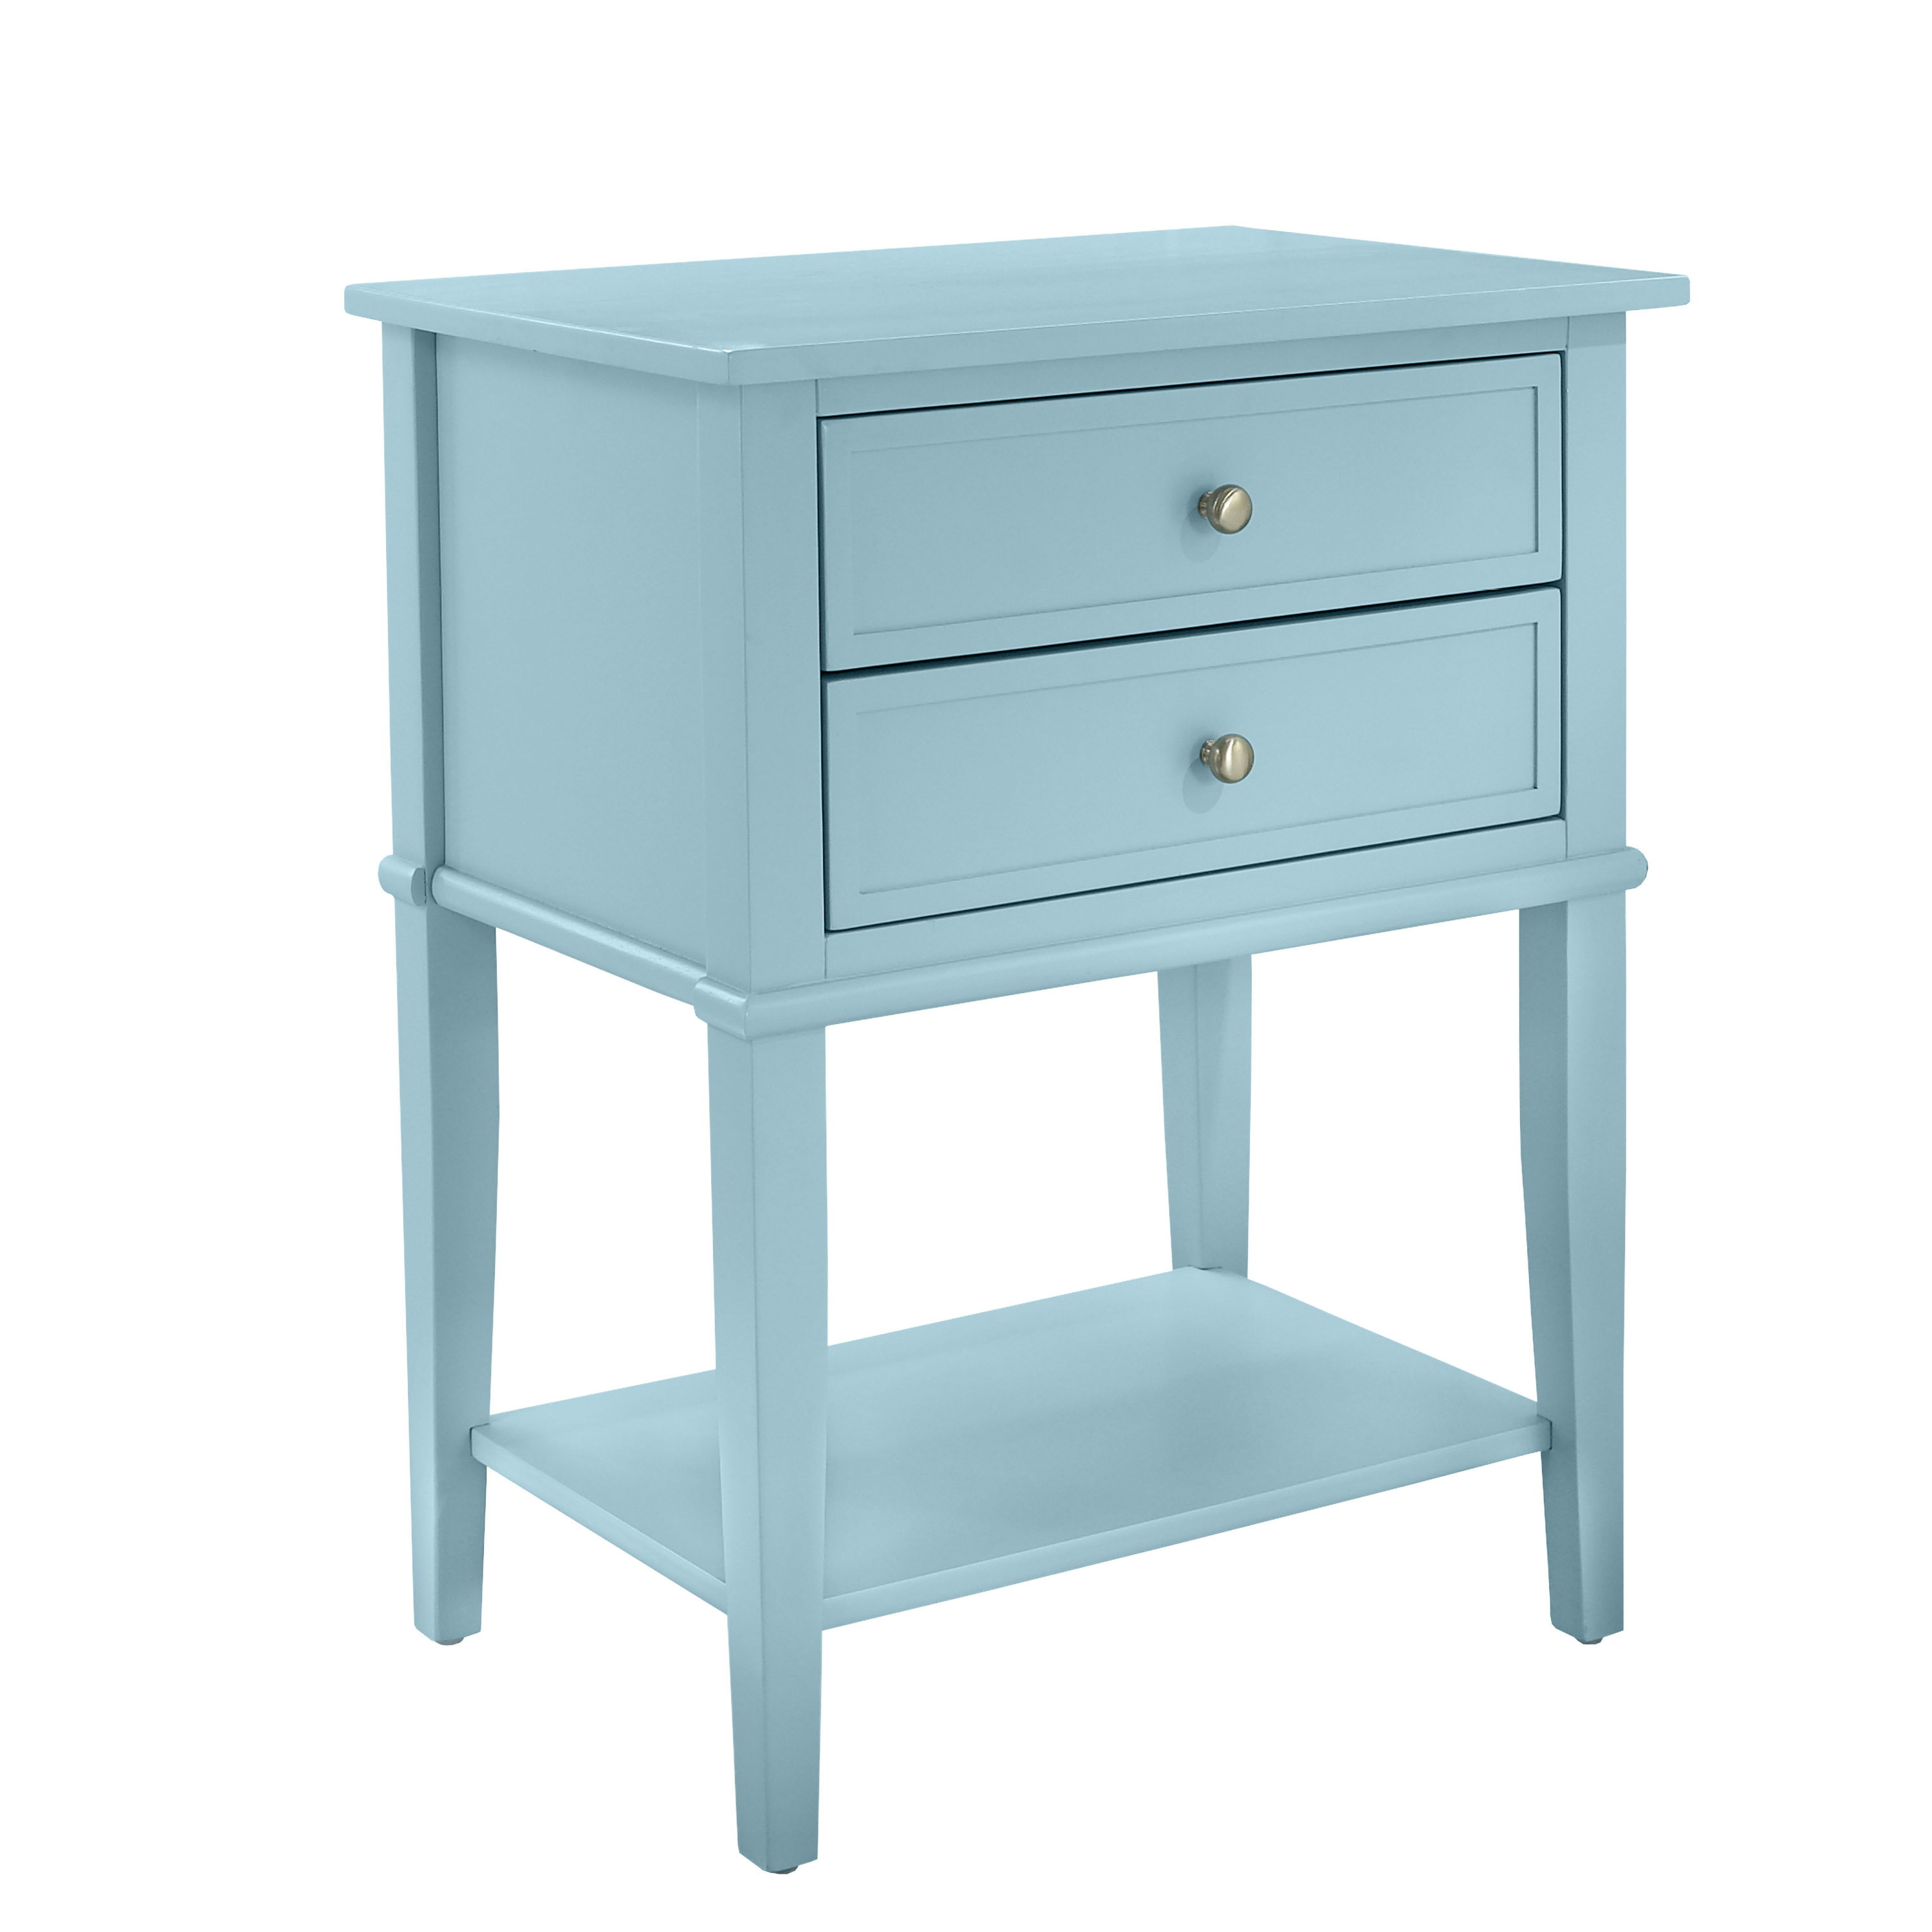 blue wood nightstands you love dmitry end table with storage fretwork accent quickview hobby lobby metal wall art slim side ikea diy chest coffee pier imports chairs dale tiffany